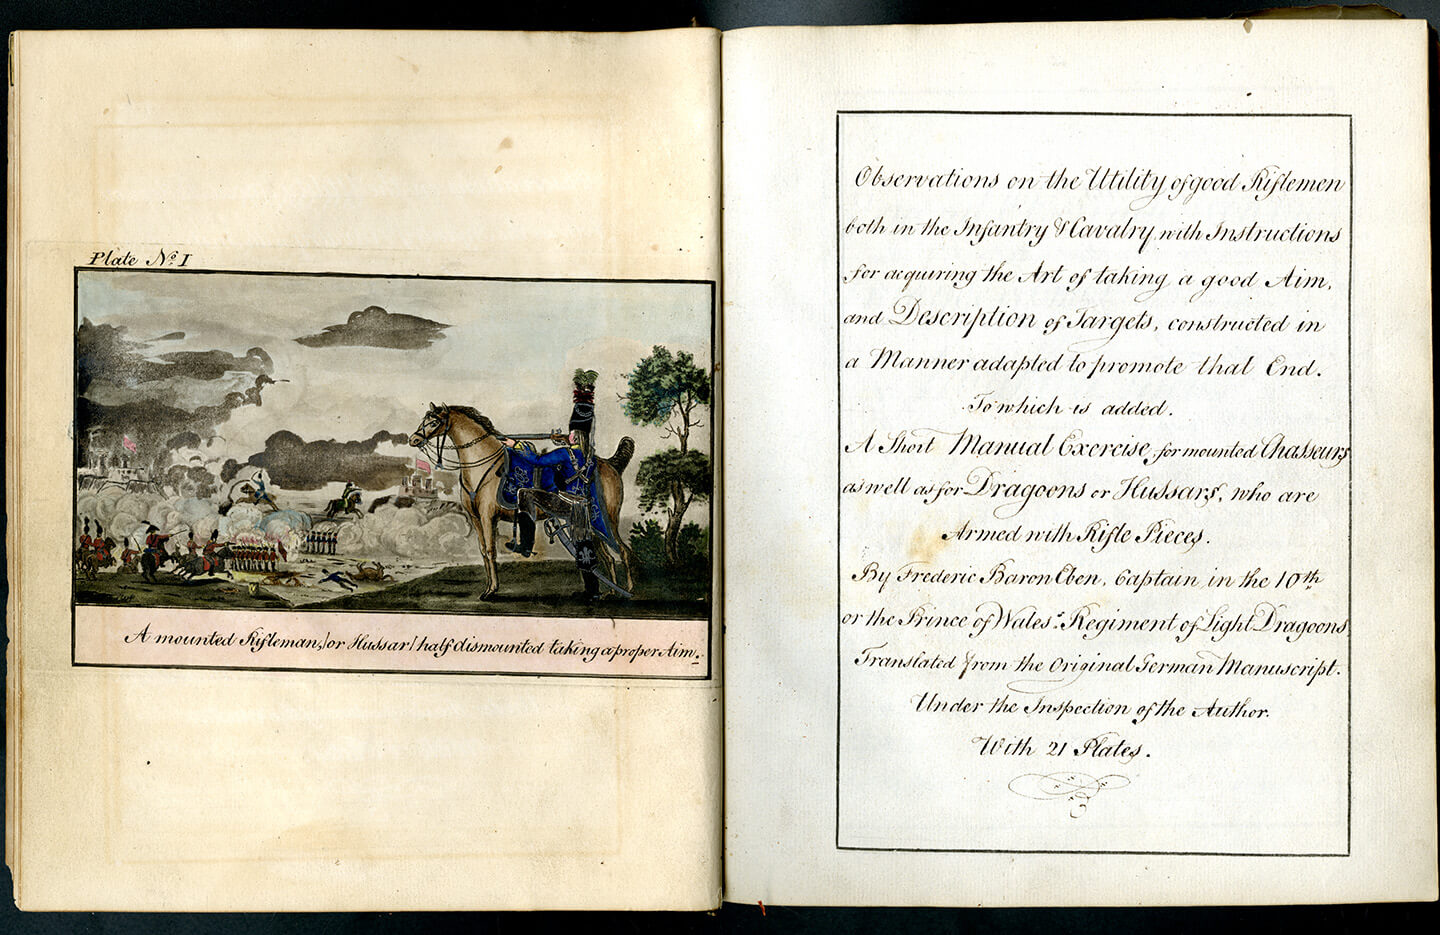 An old book laid out with its pages open. One side has a picture of a man shooting wit his rifle resting on the back of his horse. Right hand page has hand written notes on rifleman ship.